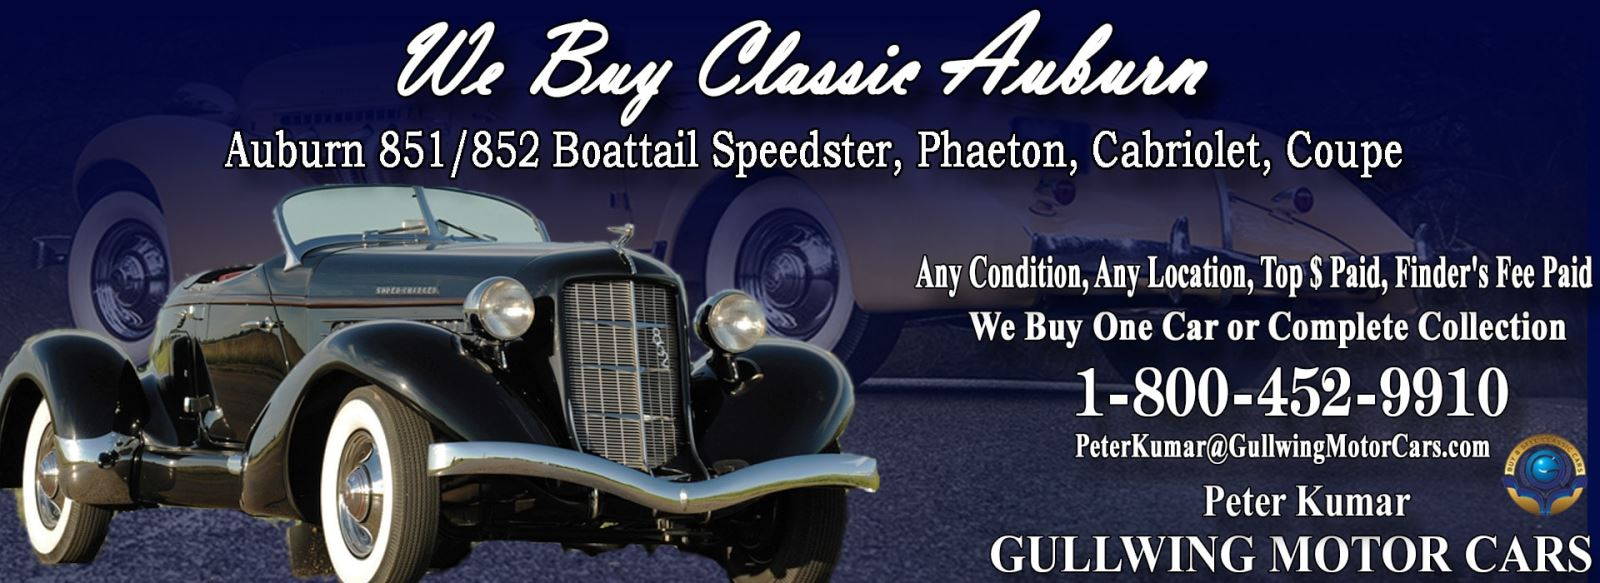 Classic Auburn Phaeton for sale, we buy vintage Auburn Phaeton. Call Peter Kumar. Gullwing Motor